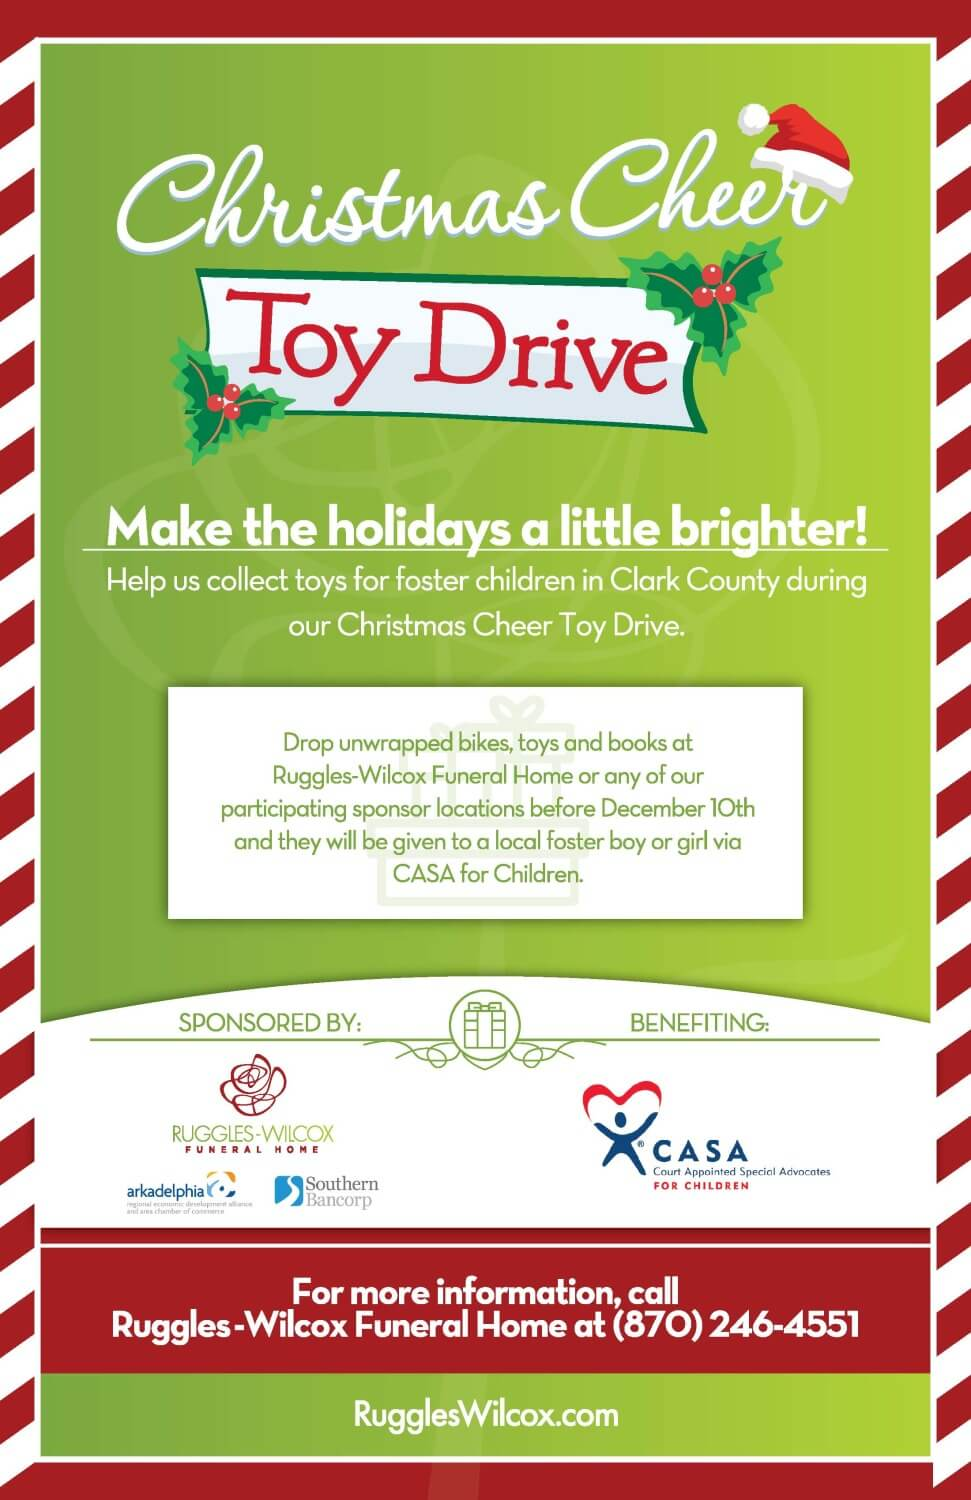 Christmas Cheer Toy Drive   Ruggles-Wilcox Funeral Home